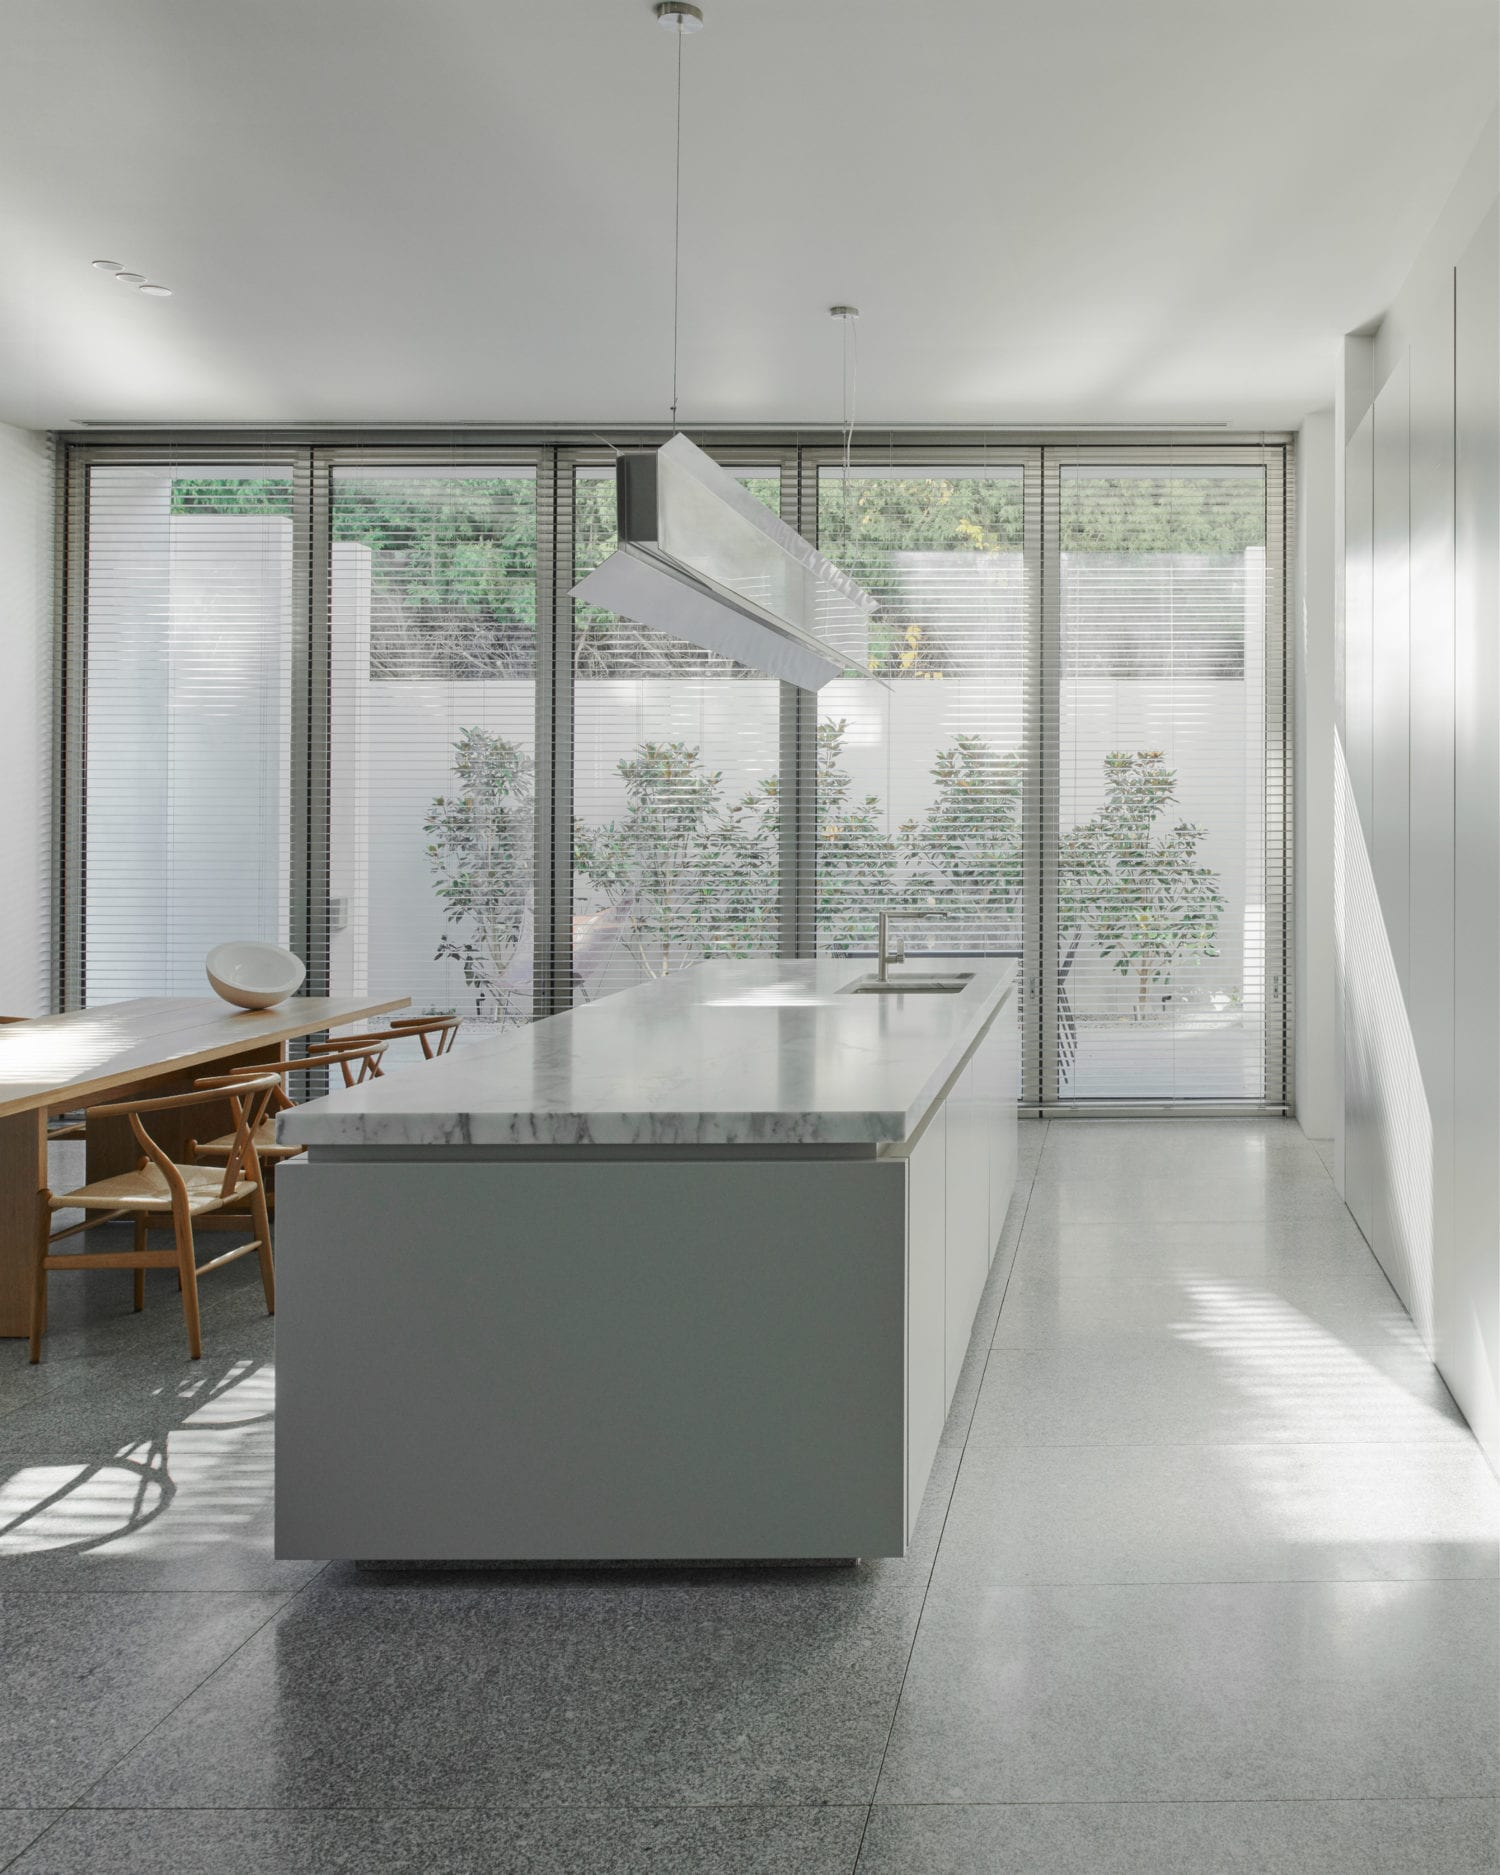 Sld Residence In Toorak Melbourne By Davidov Partners Architects Yellowtrace 05